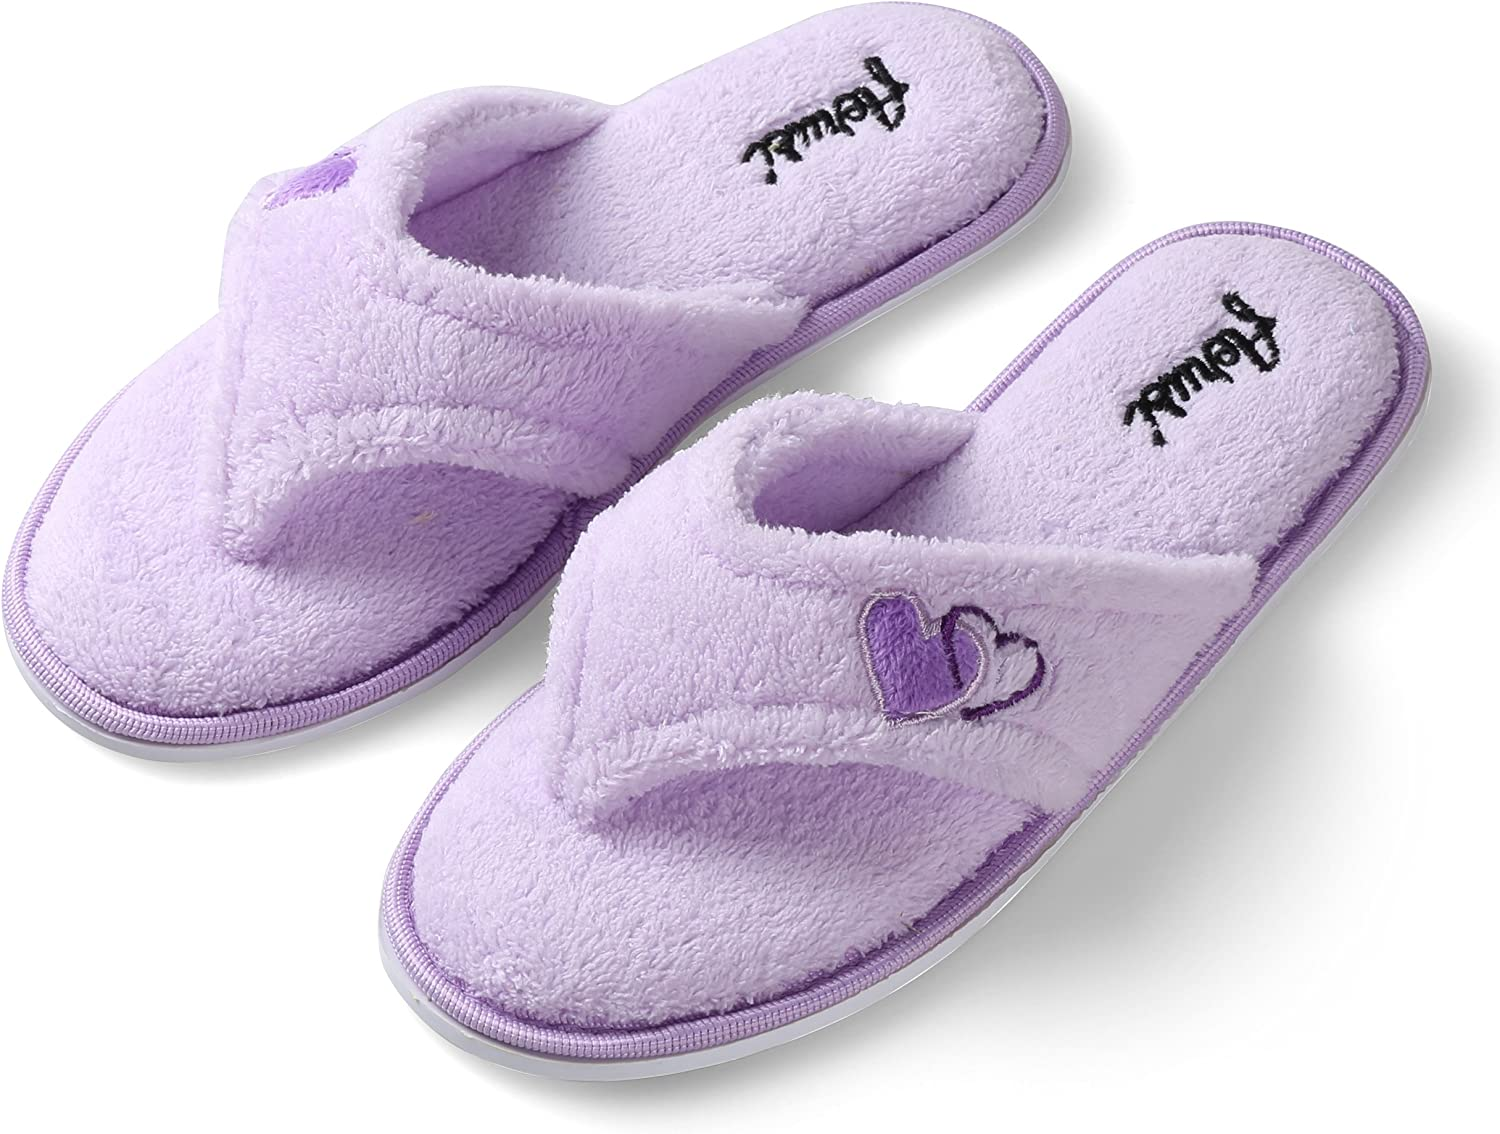 Aerusi SEL1010XL Splash Spa Women's Dual Hearts Indoor Home Bedroom Single Pair Slippers,purplec Purple,Size X-Large  Usa Size 11 - 12   European Size 42 - 43